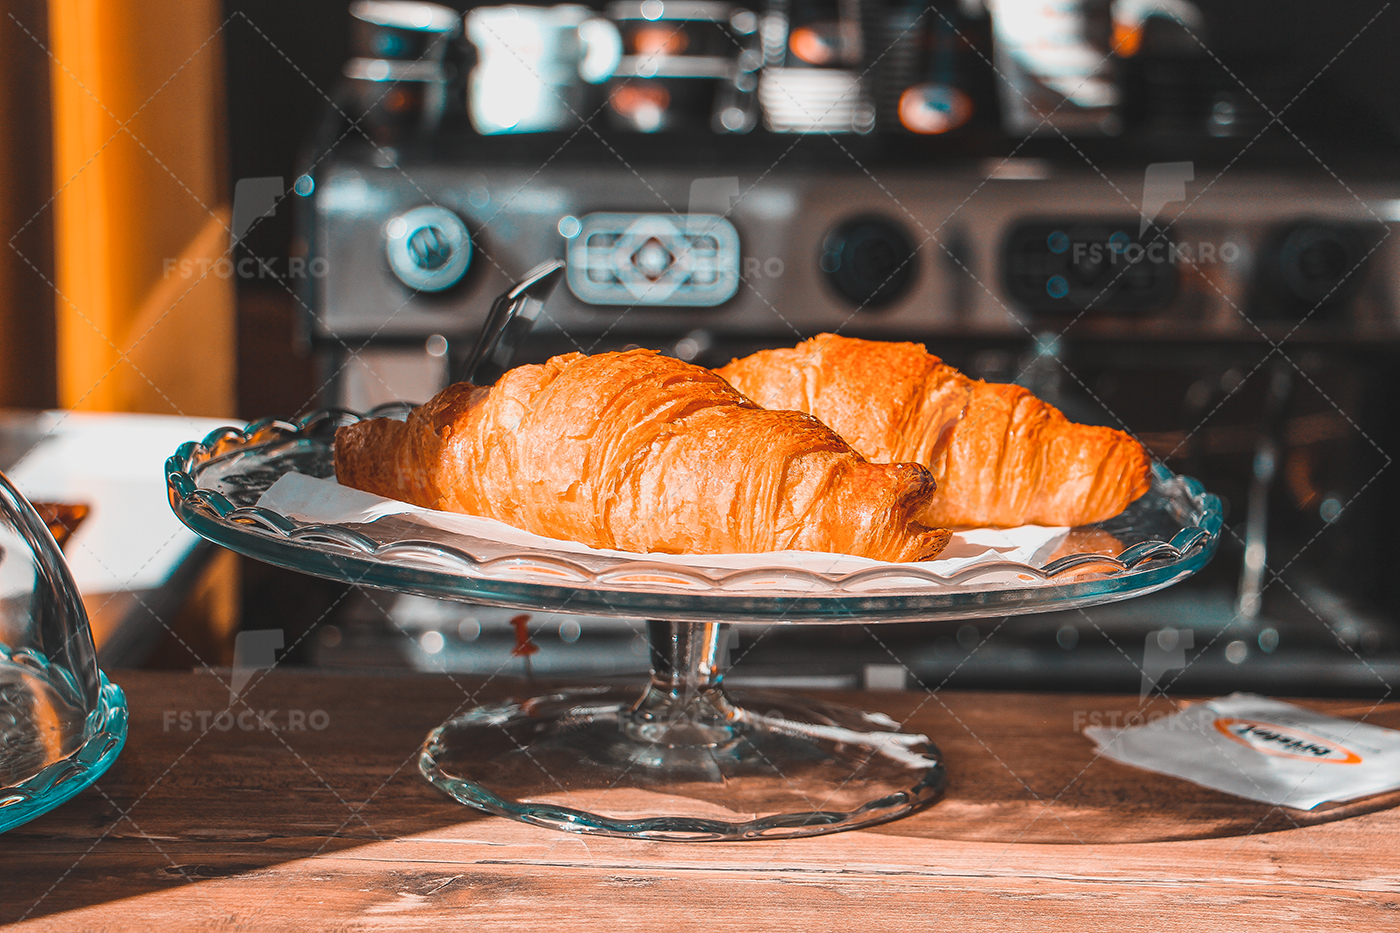 Coffee shop, fresh baked croissants on glass plate